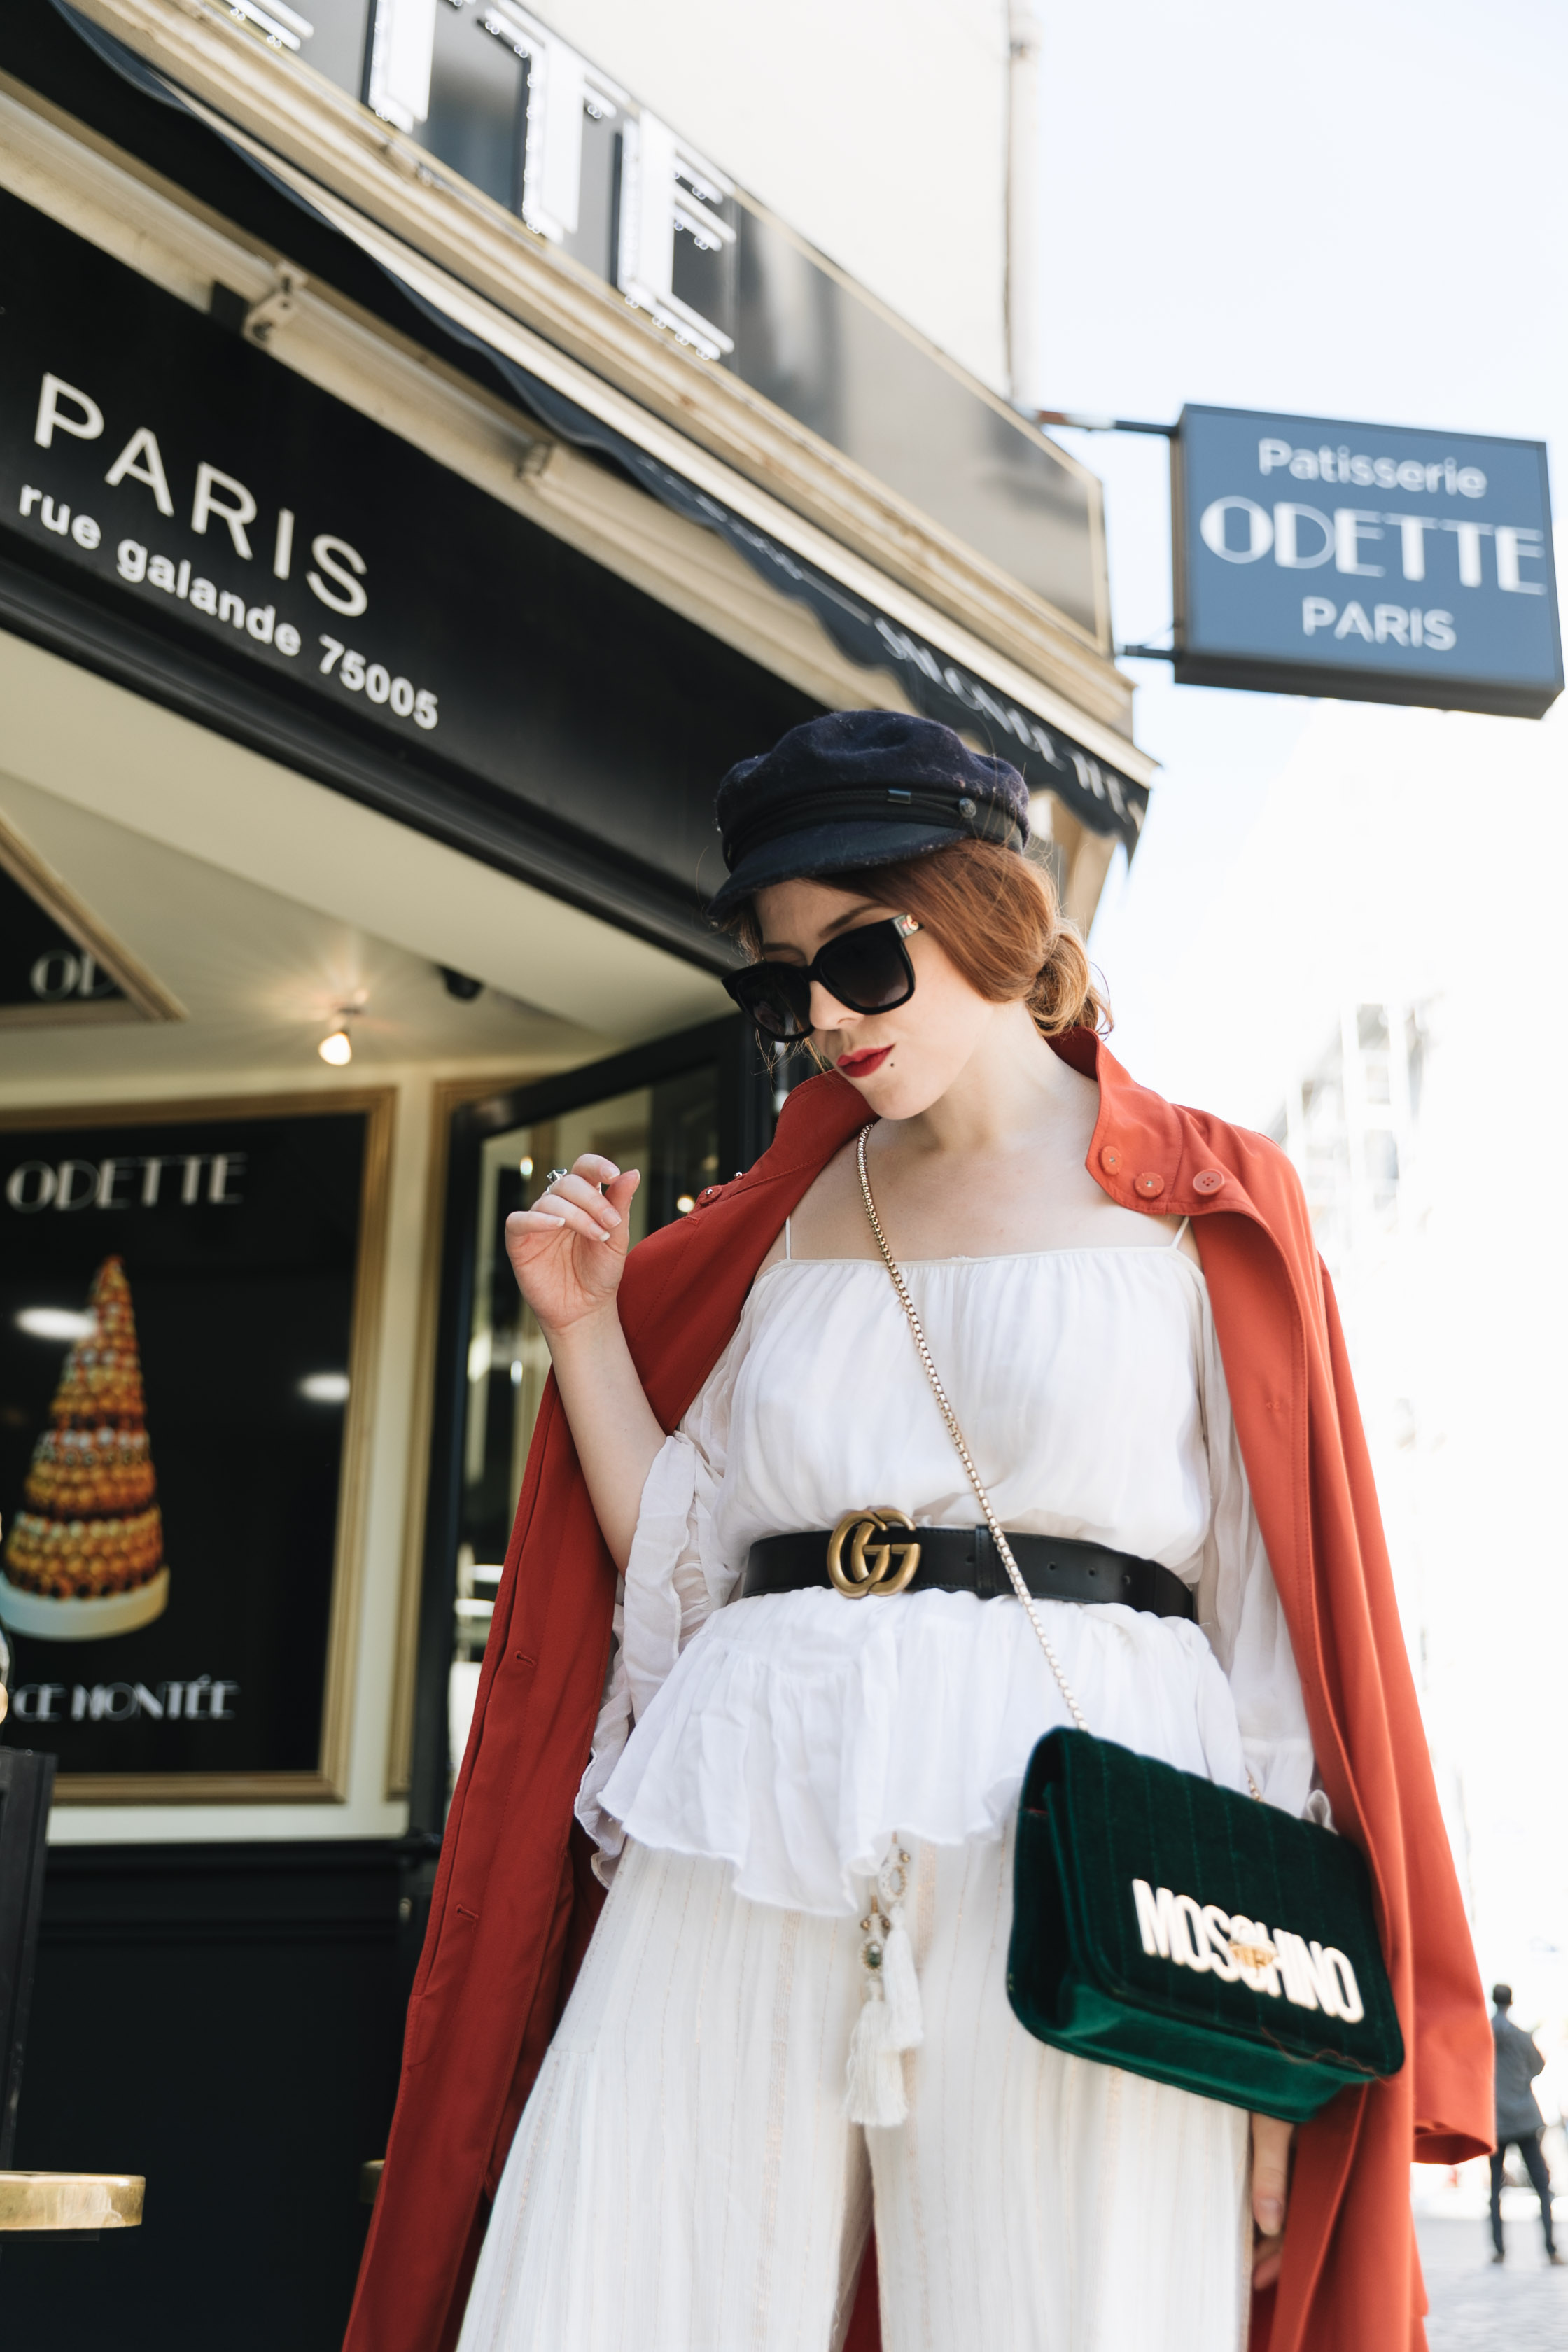 trench orange pantalon oversize tenue mode patisserie Odette Paris saint michel charlie sugar town